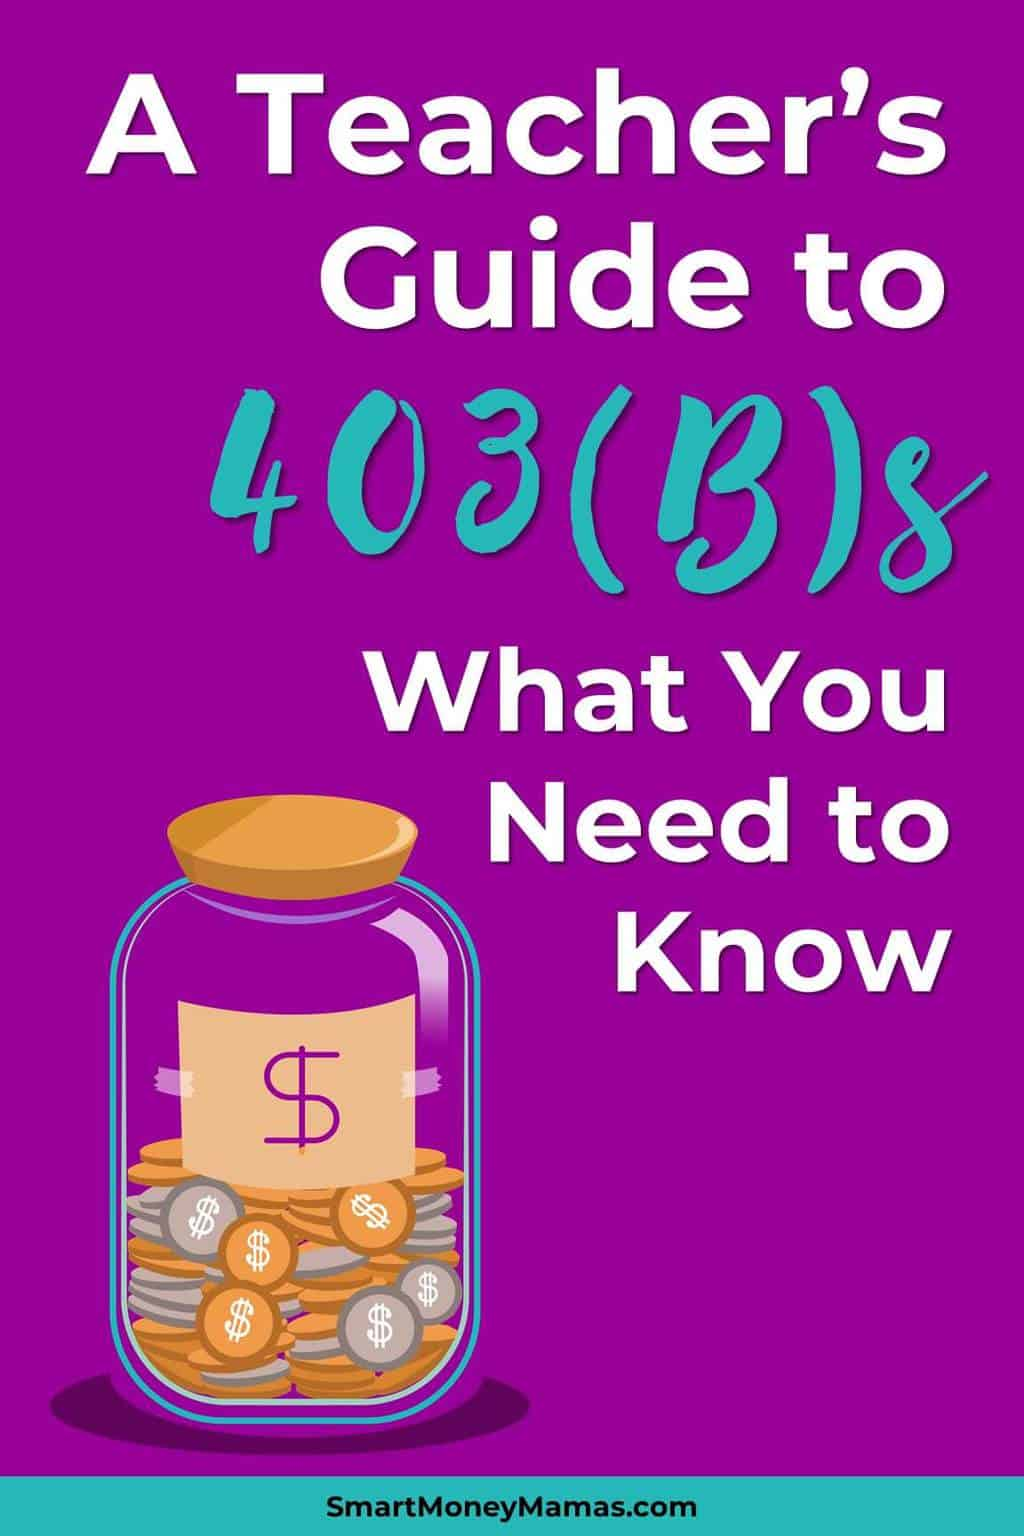 This was so helpful! I contribute to my 403(b), but I signed up when I first started at my school and never really understood how 403(b)s actually worked. Going to look at how much I\'m contributing and what my fees are later today. So important! #teachers #retirement #investing #smartmoneymamas